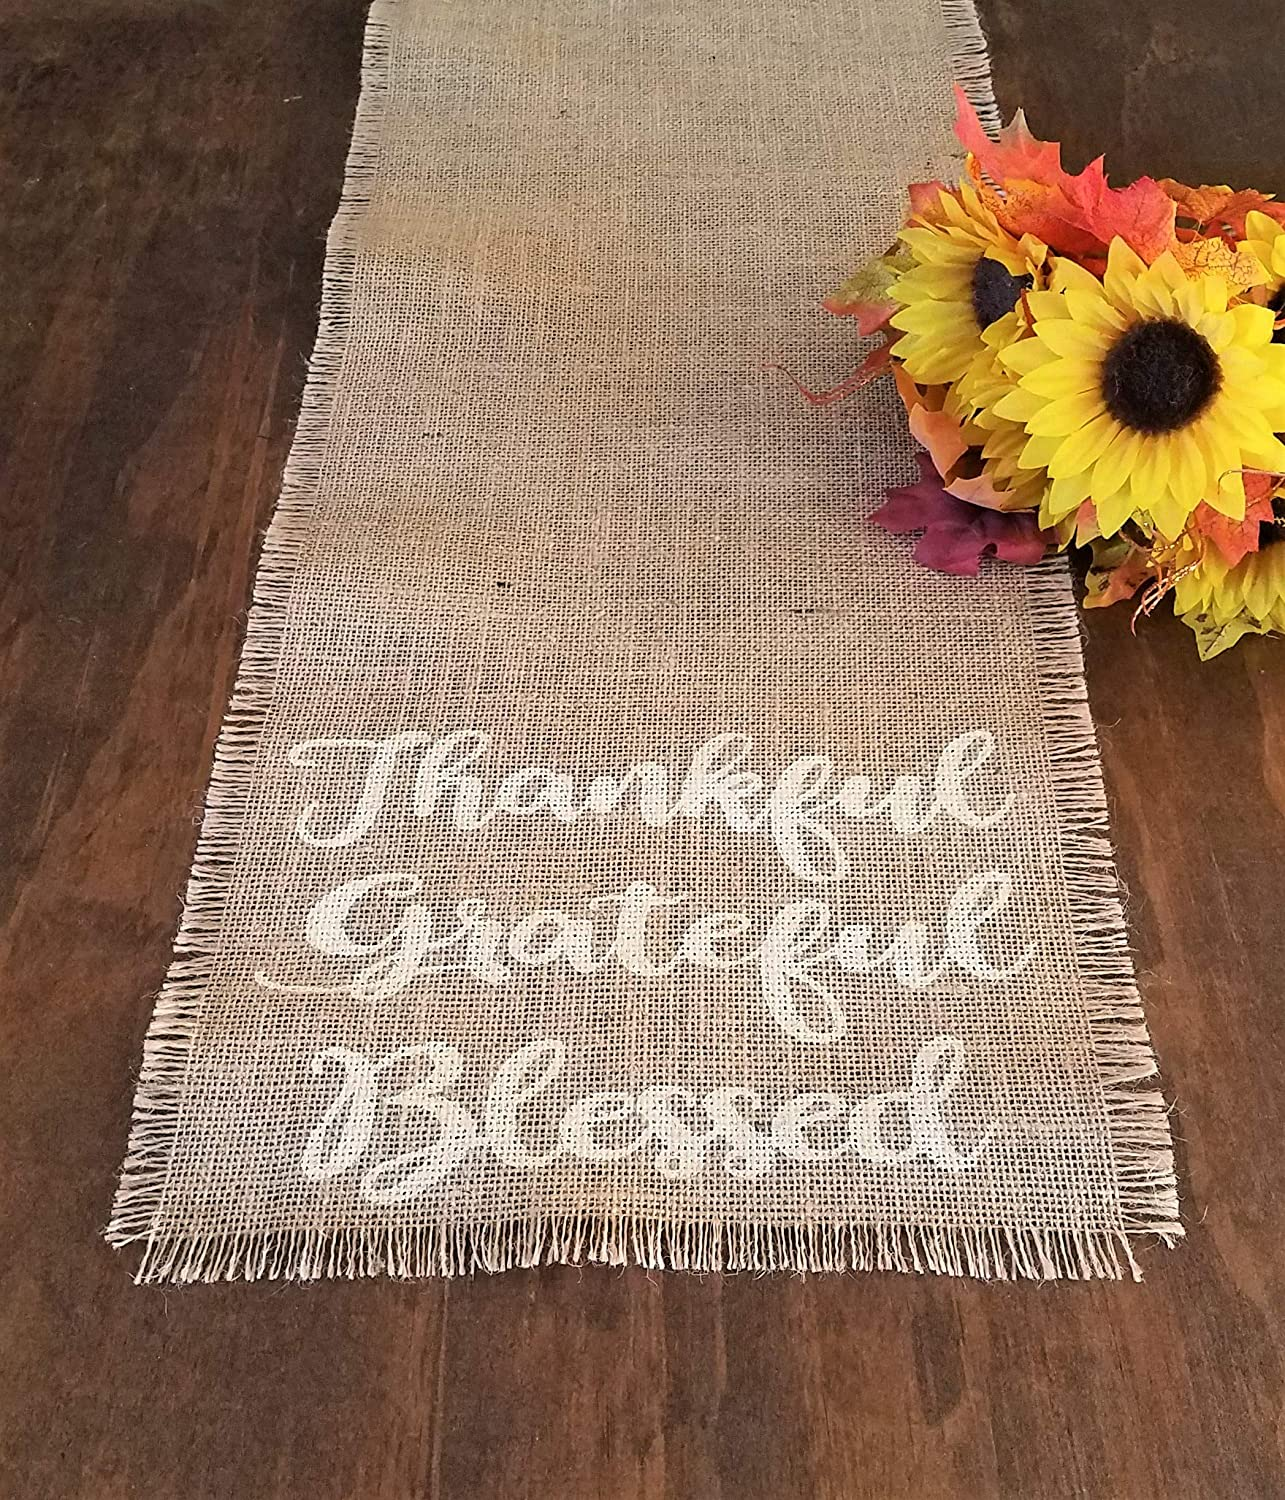 48 90 Rustic Burlap Fall Table Runner 108 160 inches 54 72 60 132 84 144 Thanksgiving Table Runner Available in 32 Thankful Grateful Blessed Fall Table Decorations Autumn Home Decor 120